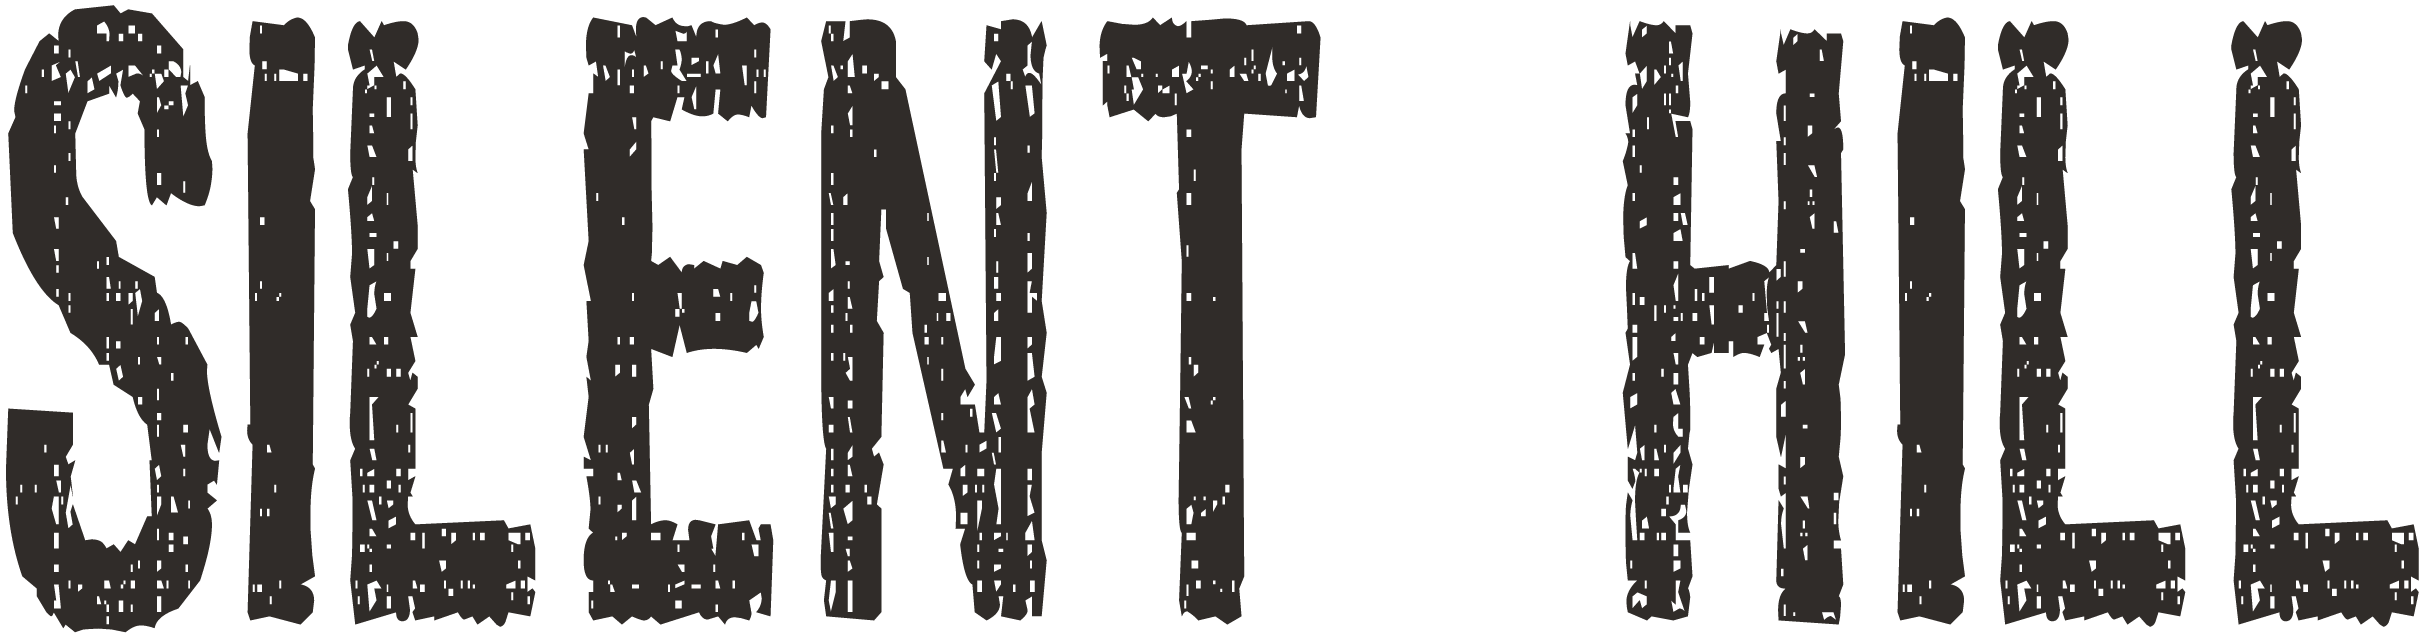 Silent hill 2 logo png. File series wikimedia commons